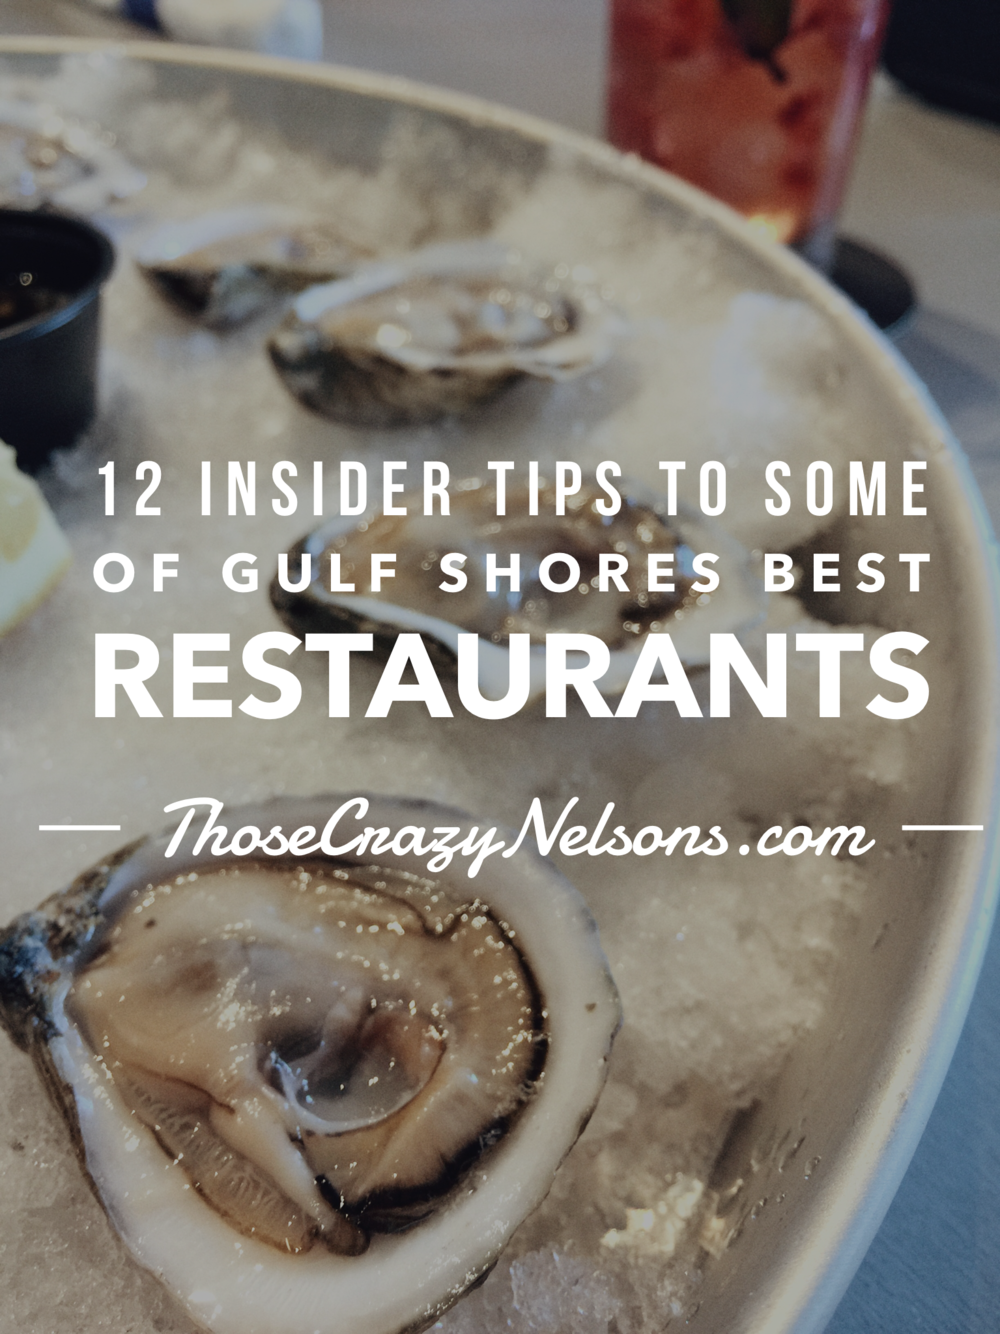 These tips will help give you the best Gulf Shores eating experience! #thosecrazynelsons